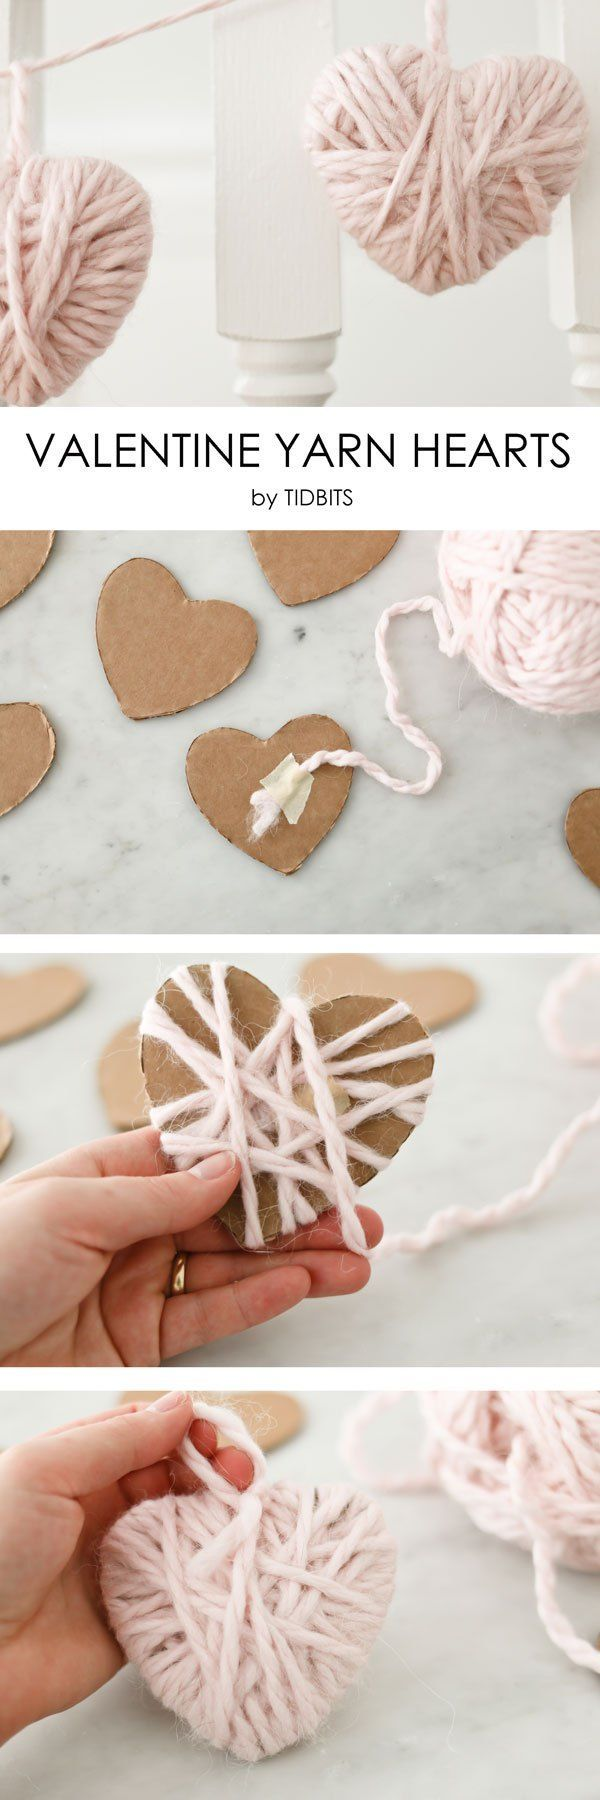 Valentine Yarn Hearts - a perfect craft for the whole family! Video included.